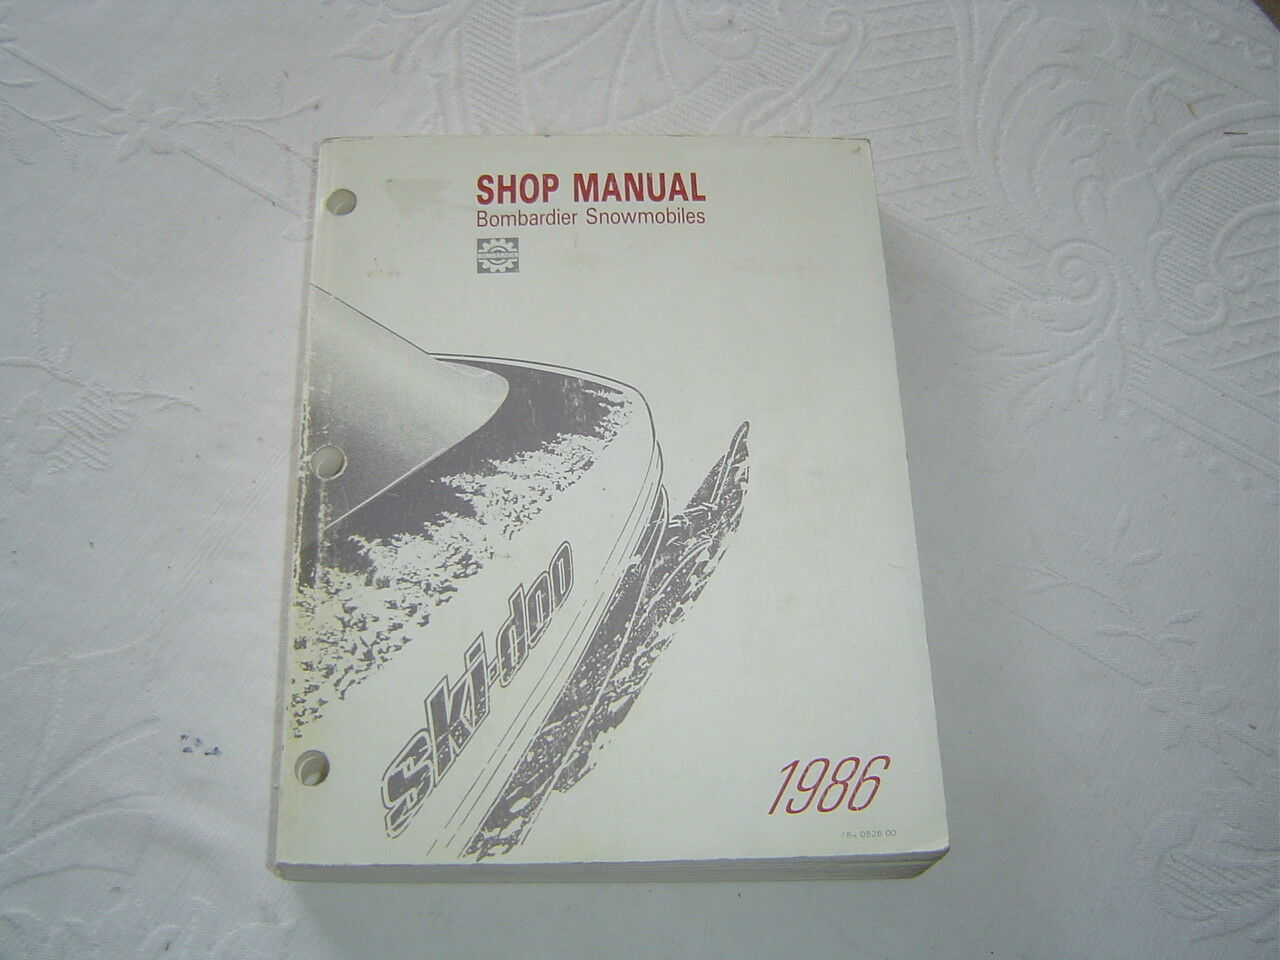 1986 Bombardier ski-doo snowmobile service  repair shop manual  factory outlet